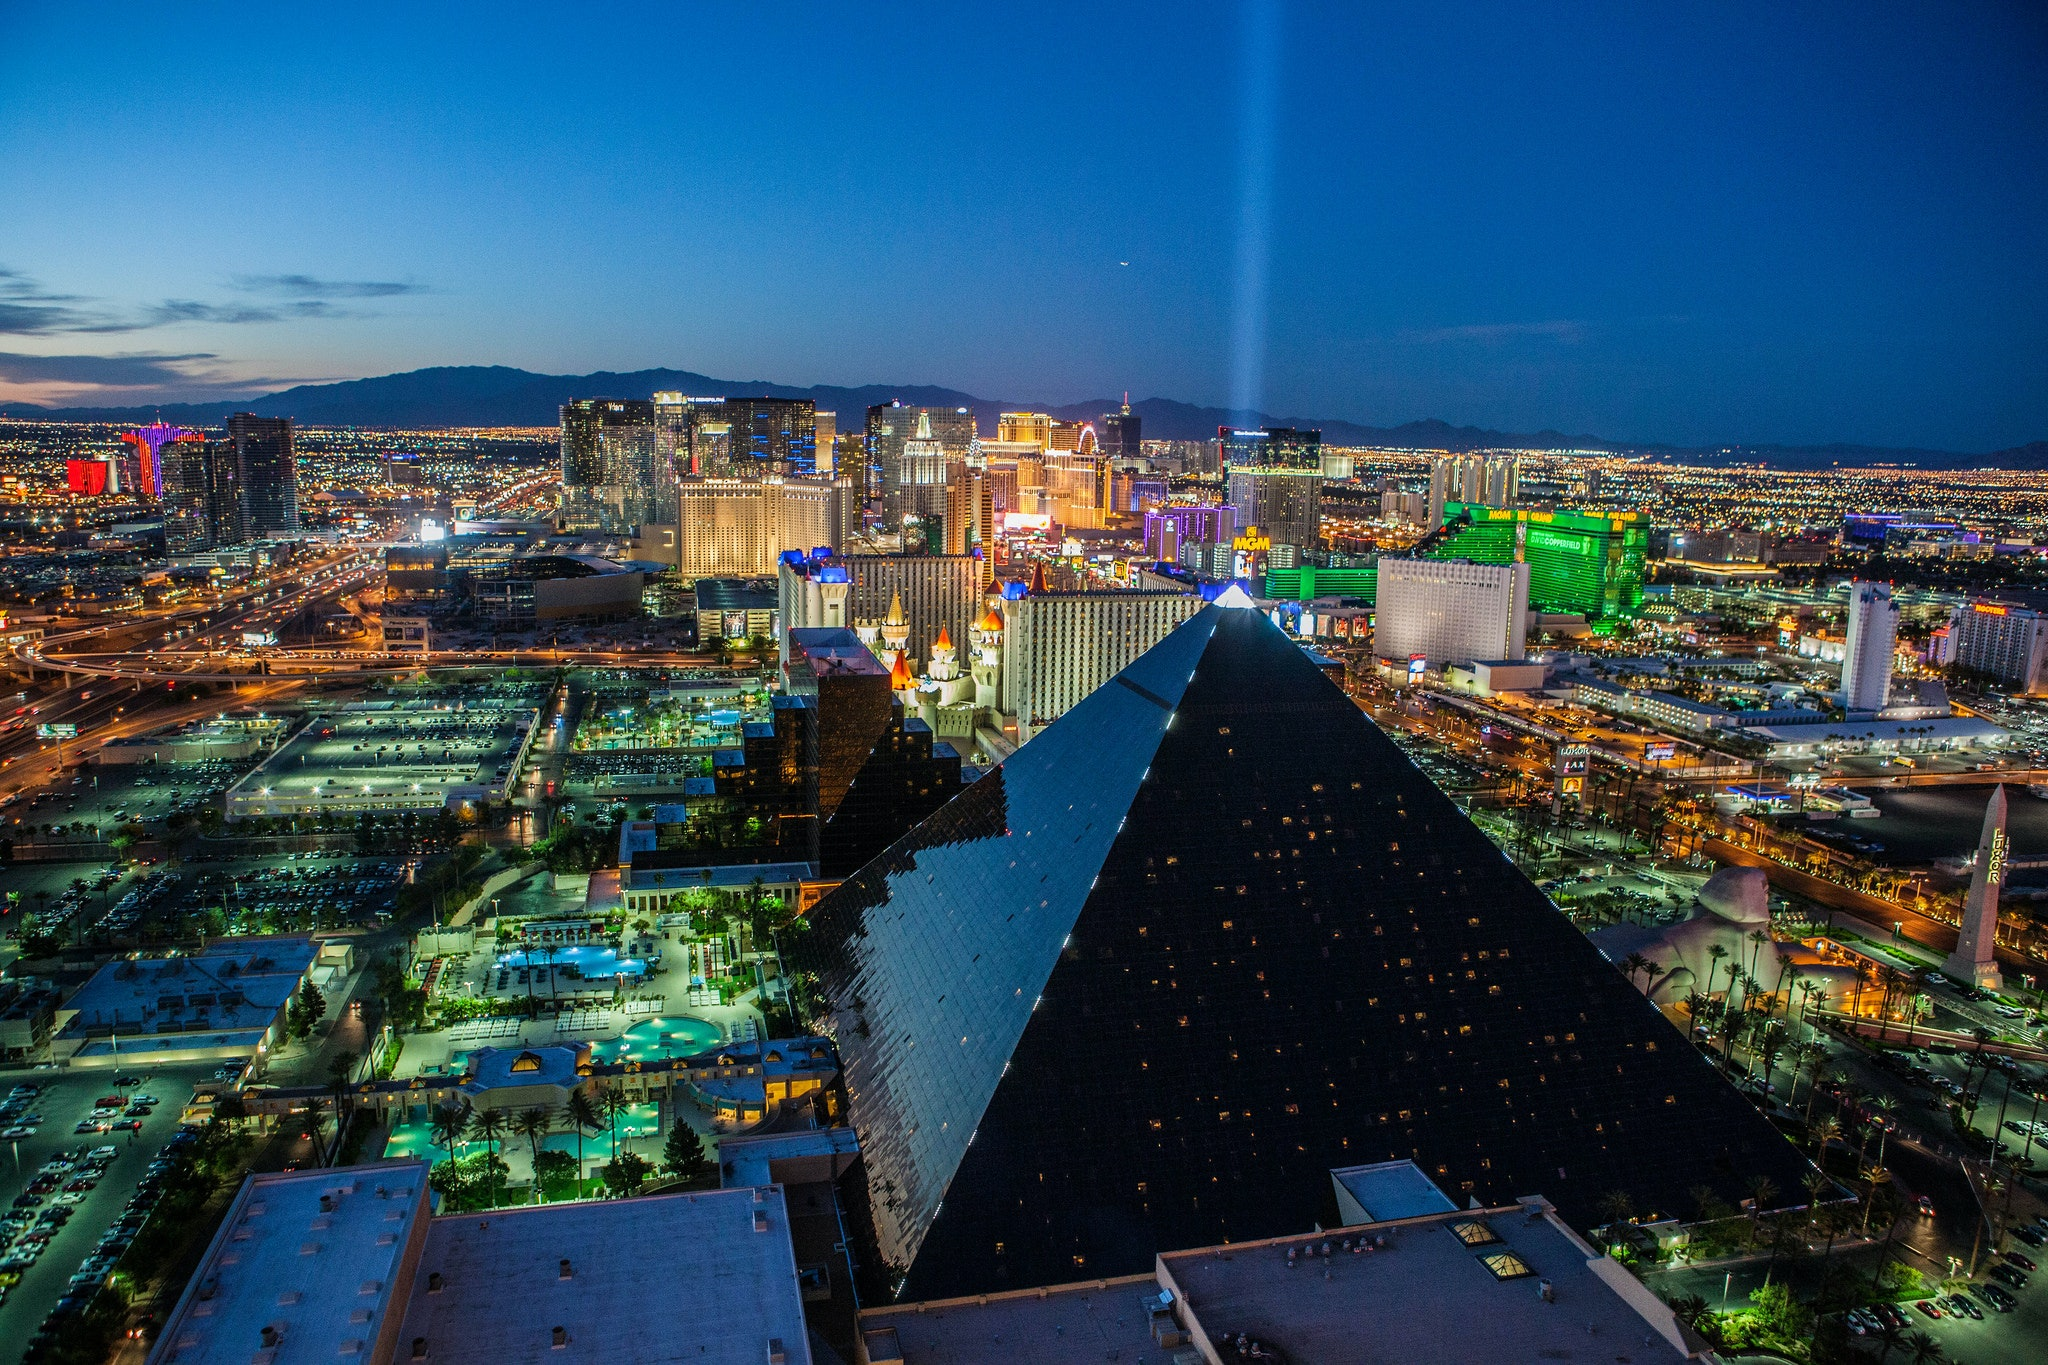 17 things all people who live in las vegas understand